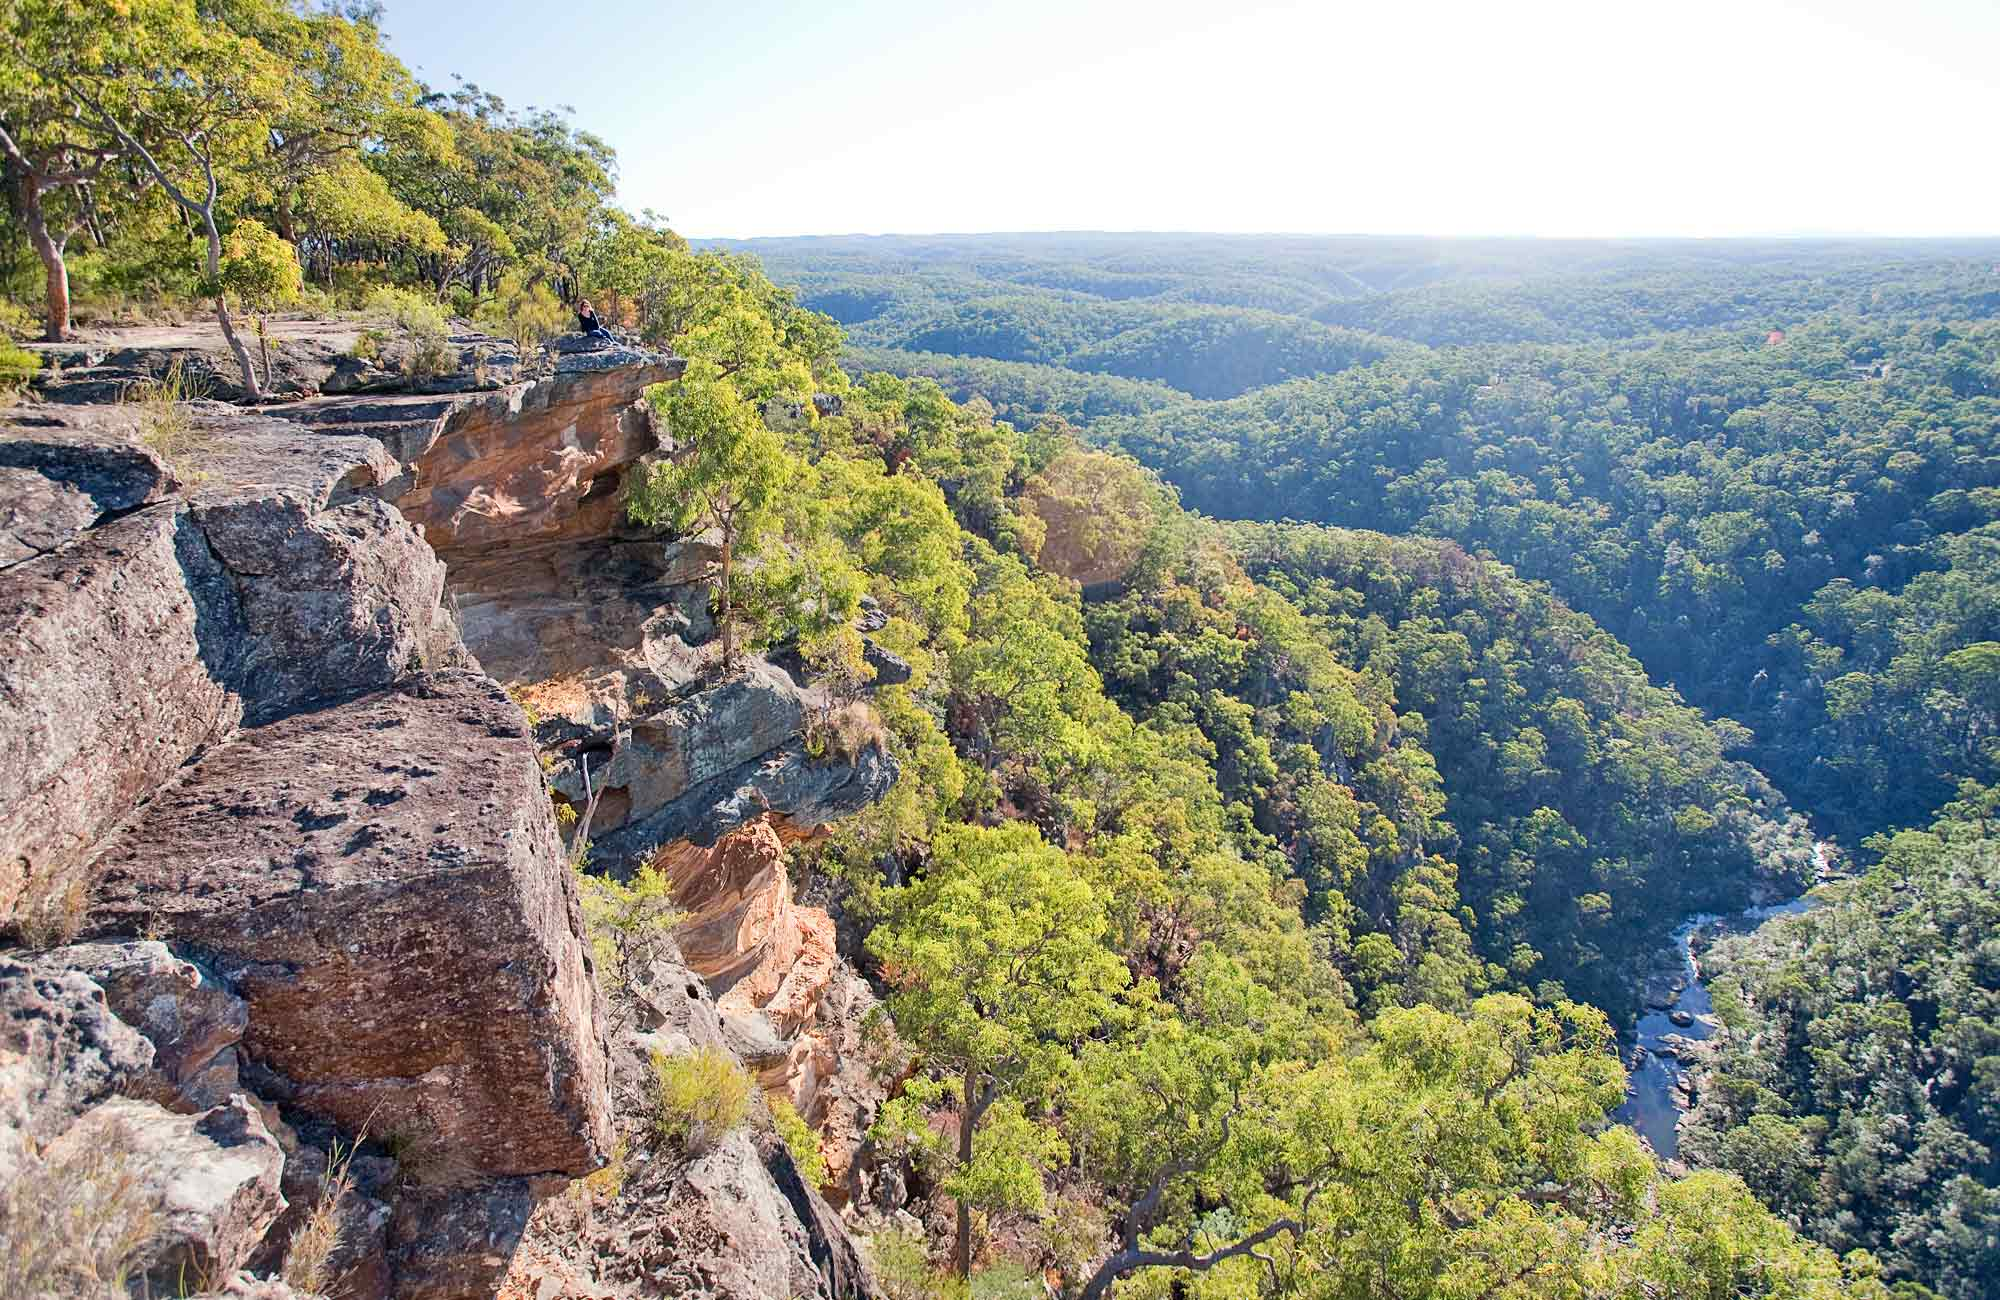 Tunnel View lookout, Blue Mountains National Park. Photo: Nick Cubbin